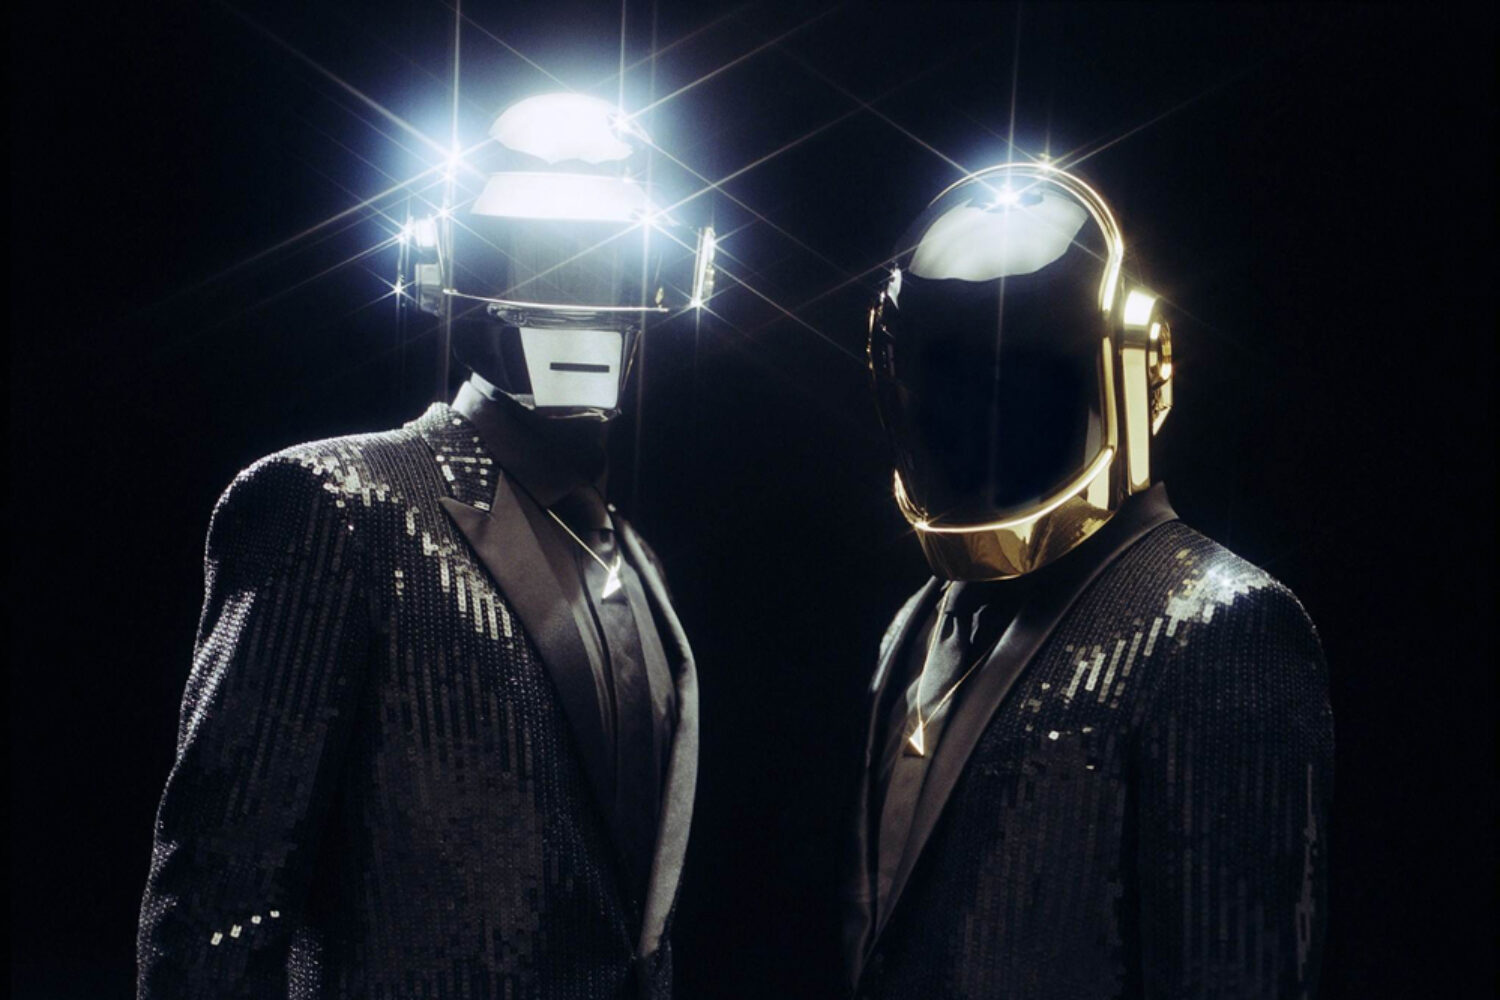 Daft Punk team up with Parcels on new track 'Overnight'